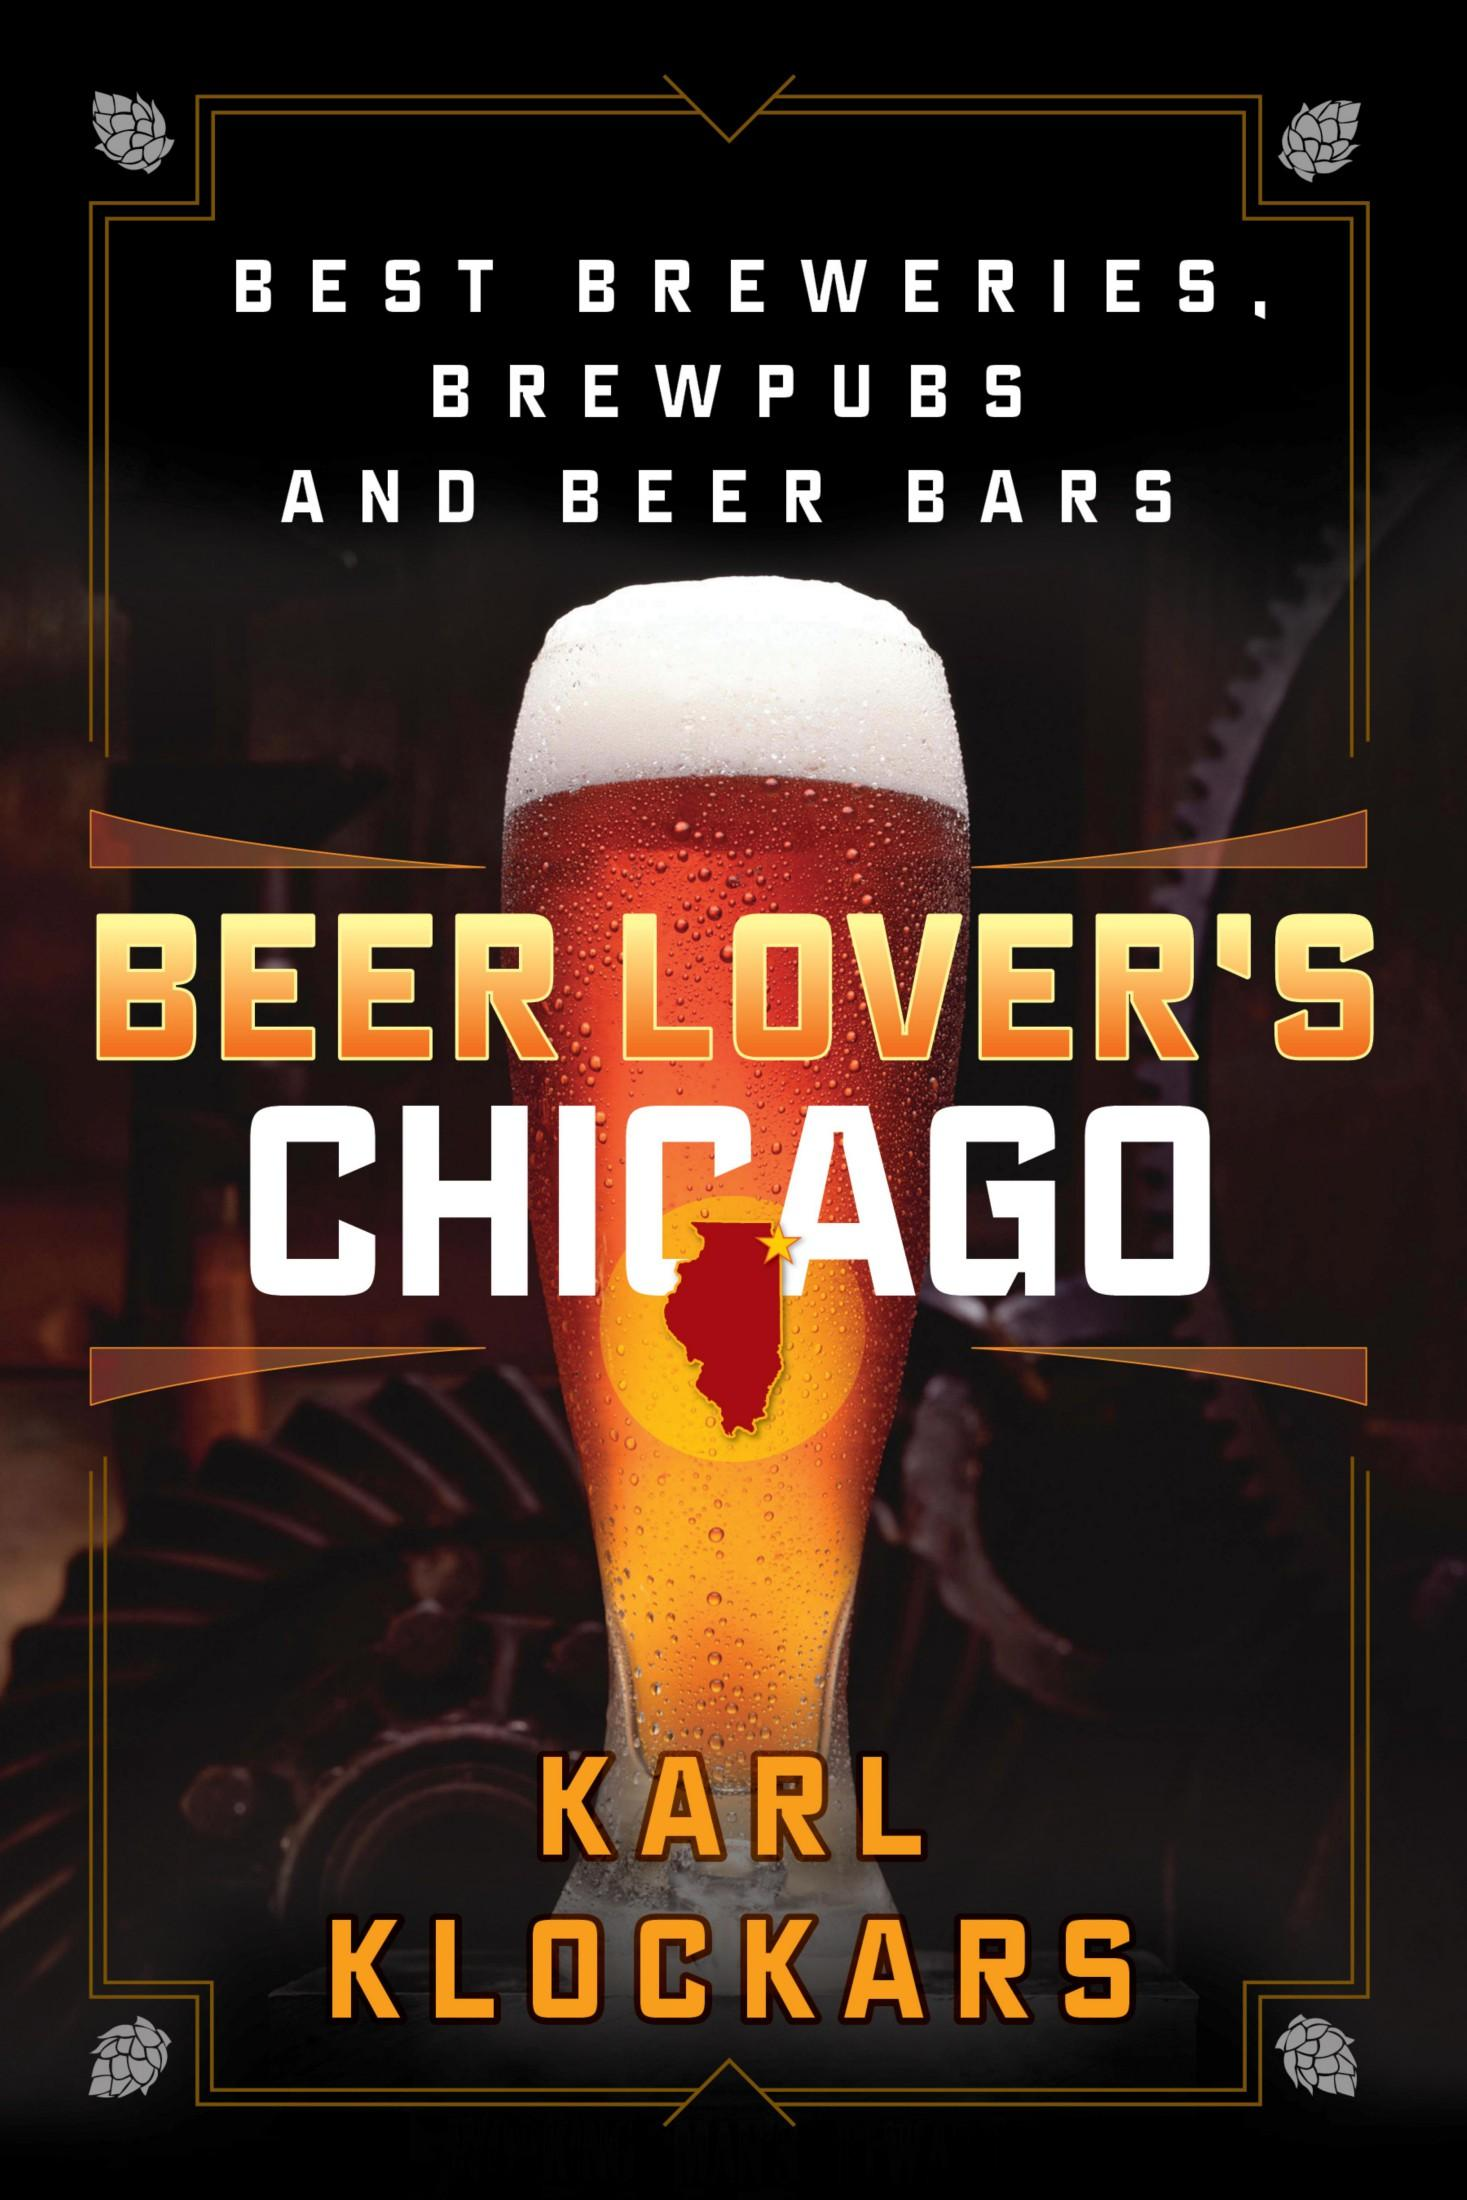 Beer Lover's Chicago: Best Breweries, Brewpubs and Beer Bars